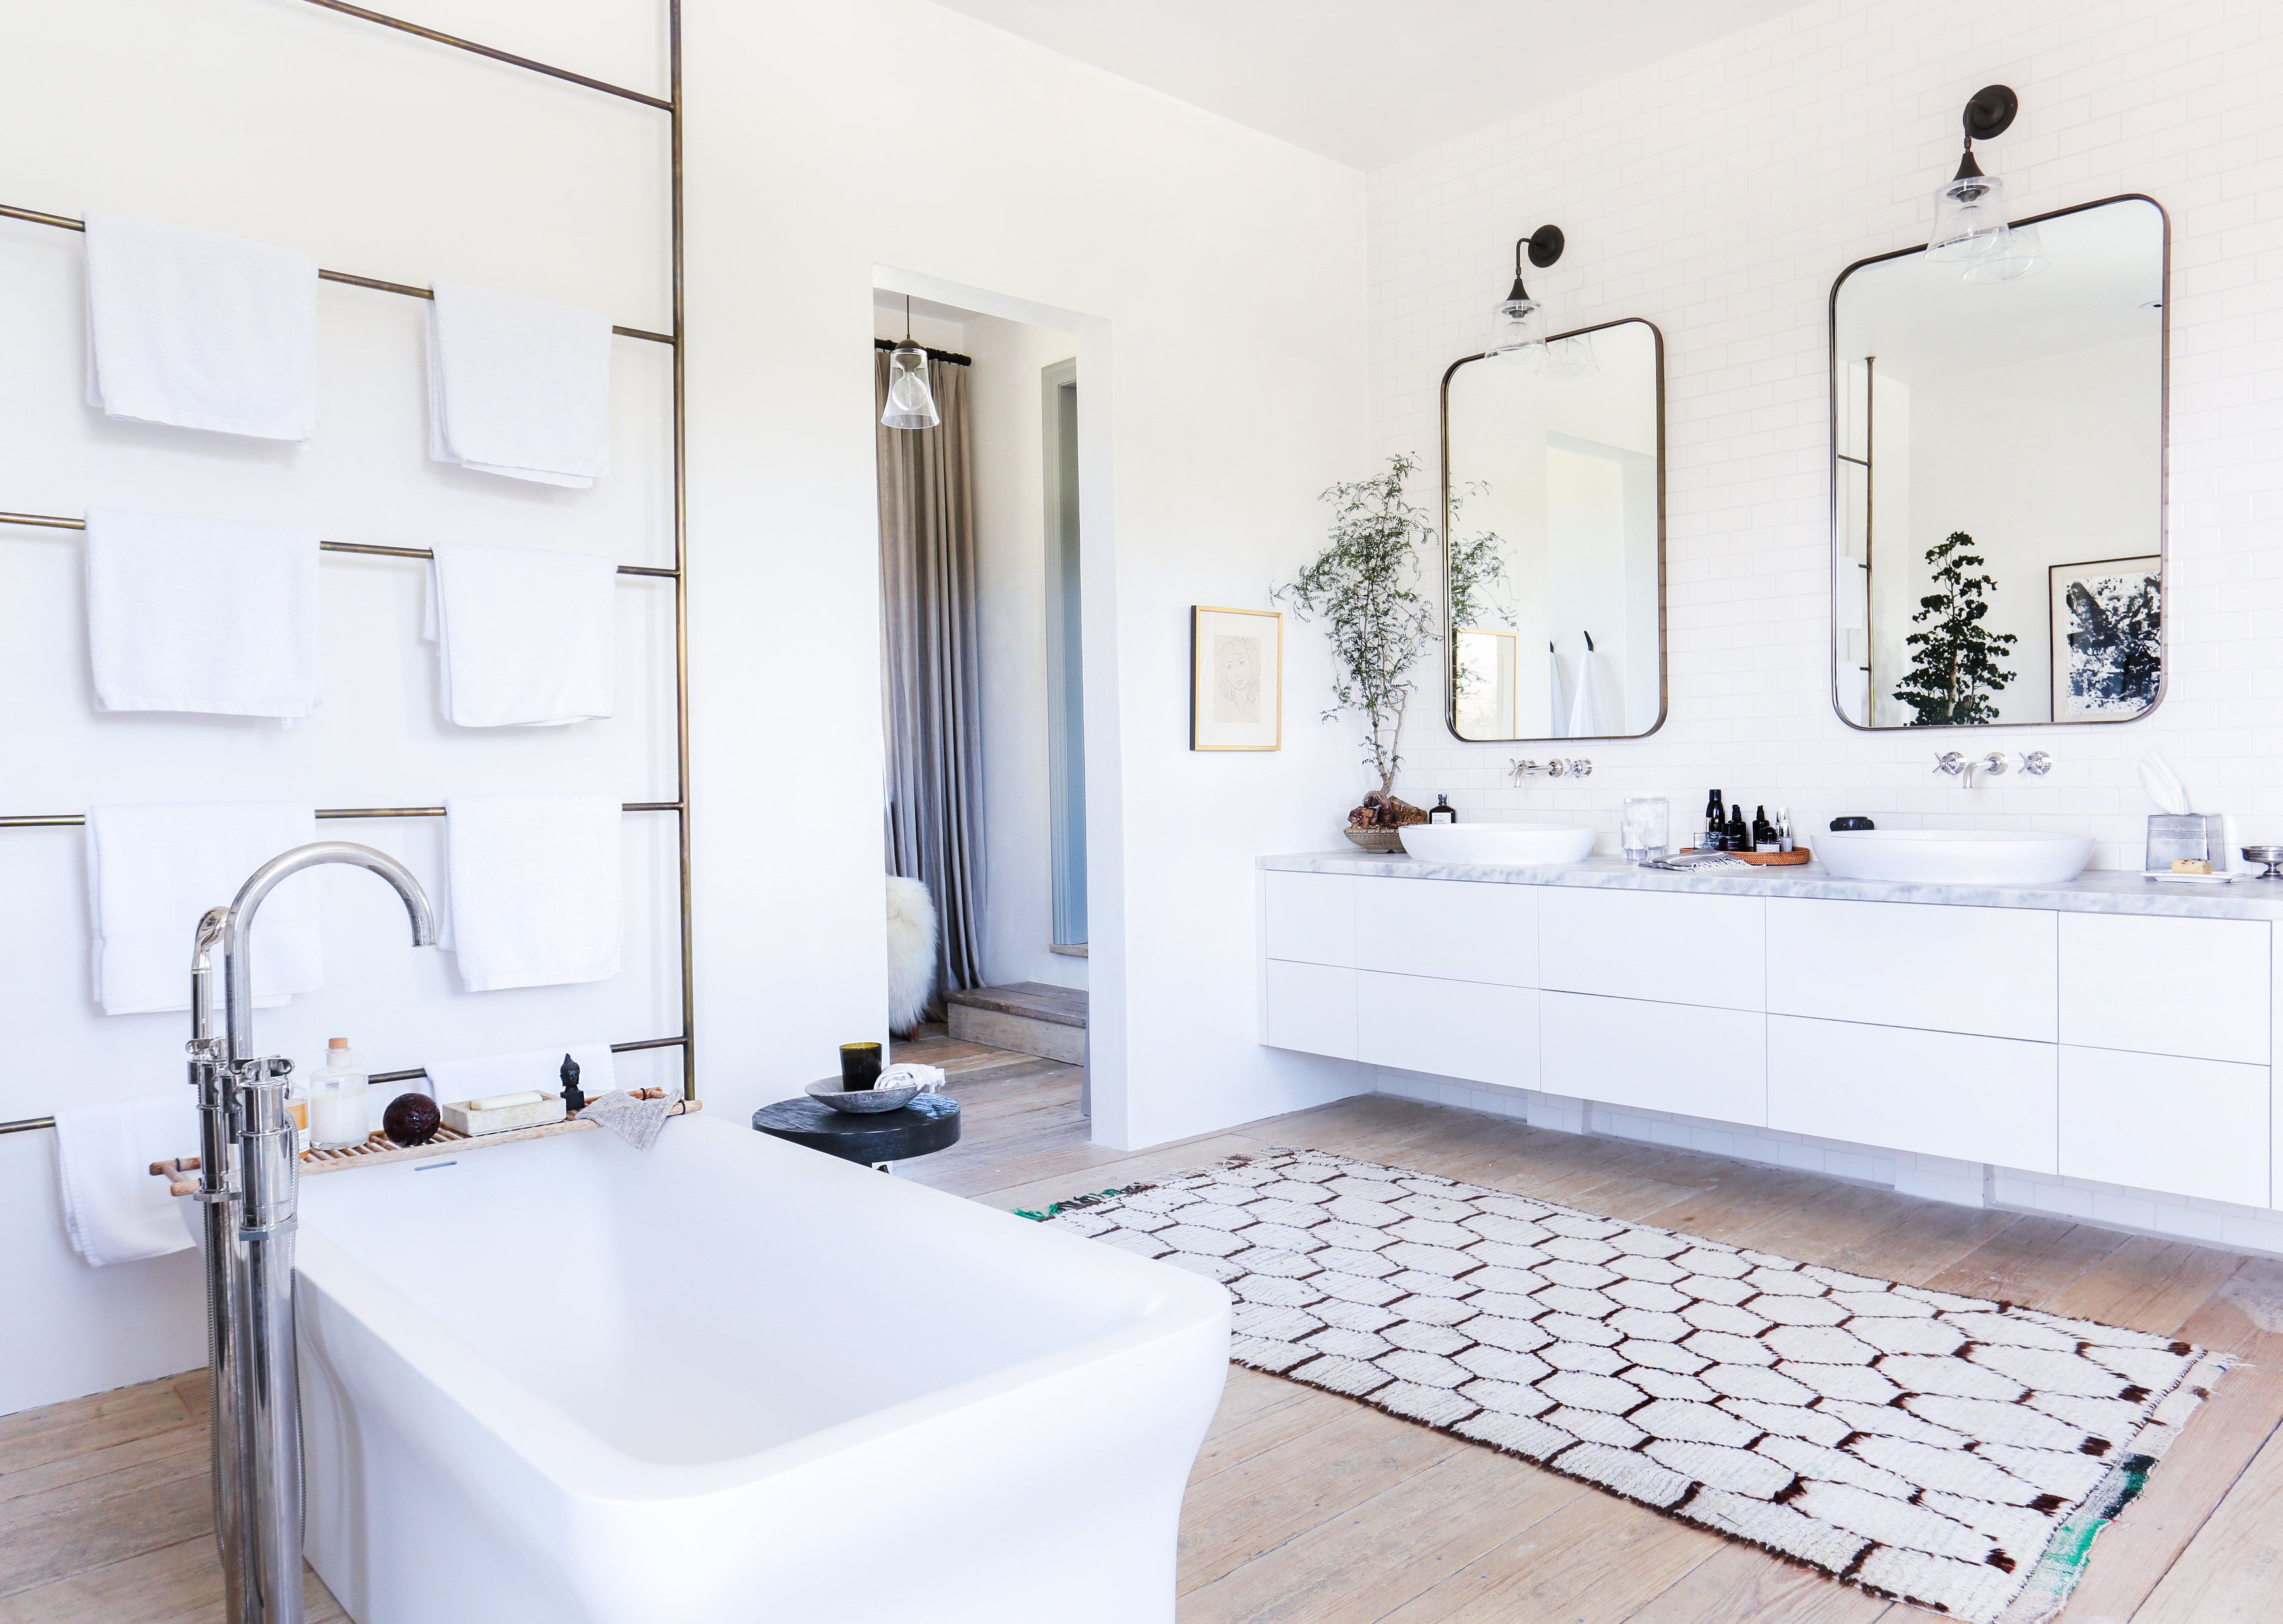 A Malibu Home Gets a Tuscan-Inspired Makeover | Master bathrooms ...